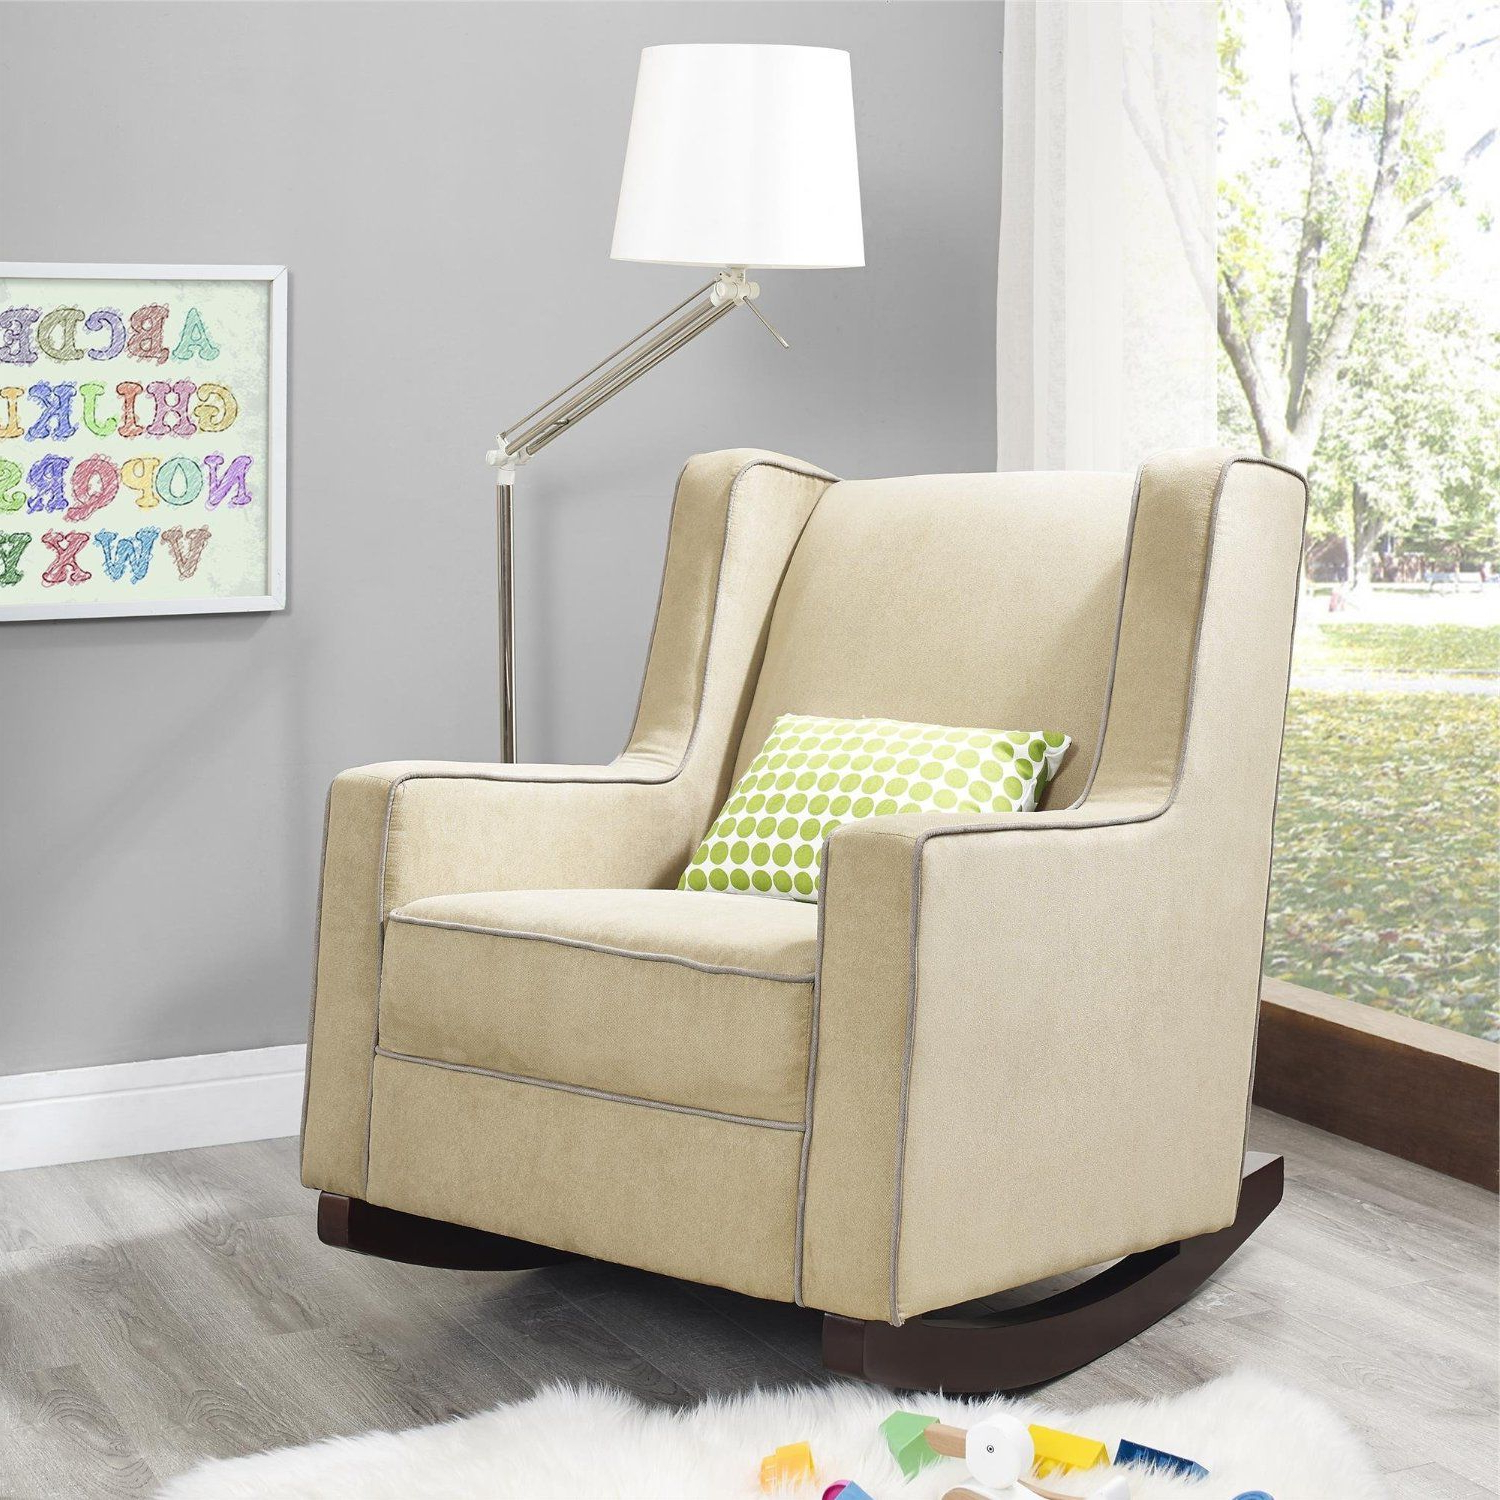 Fashionable Abbey Swivel Glider Recliners With Amazon – Baby Relax The Abby Nursery Rocker Chair, Beige (View 17 of 20)